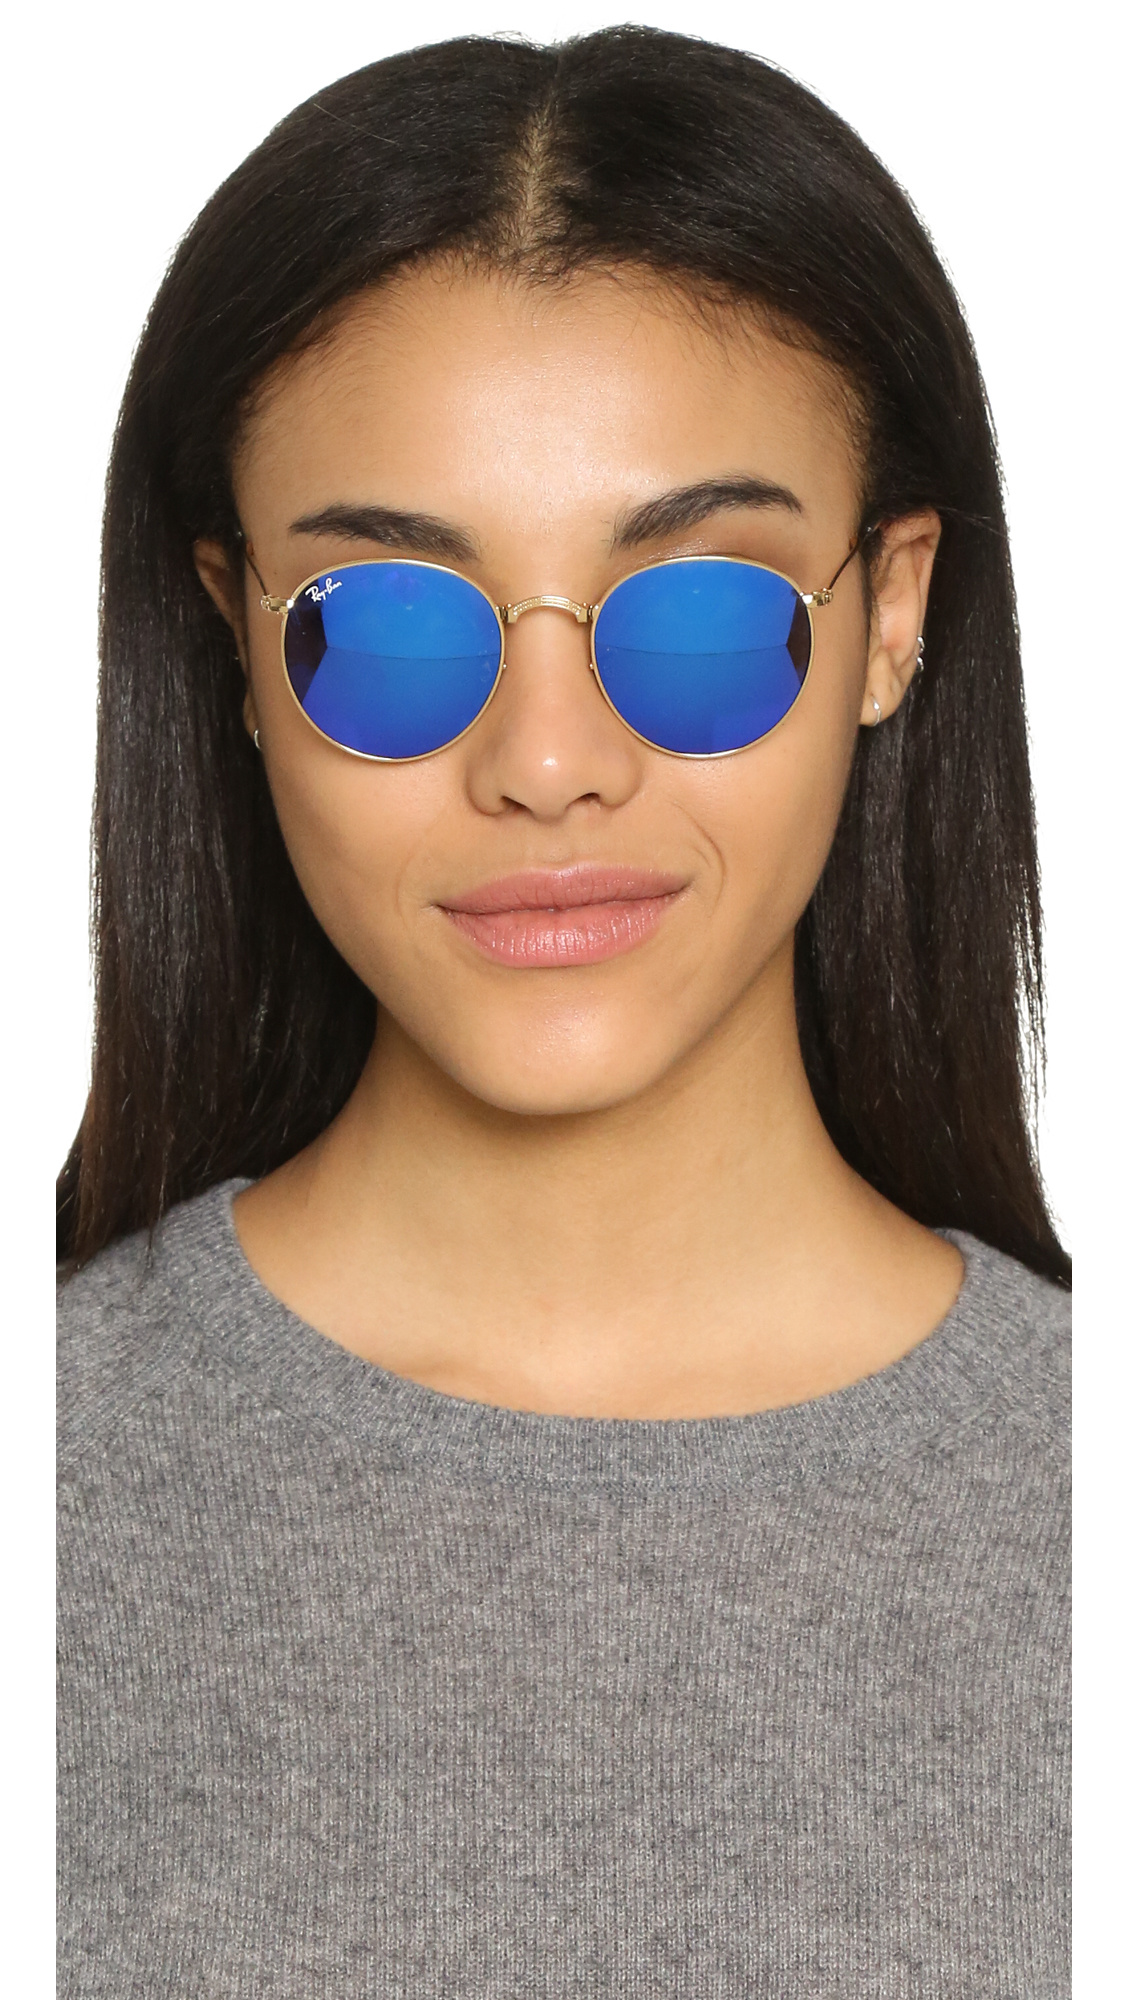 Ray-Ban Icons Mirrored Round Sunglasses in Metallic